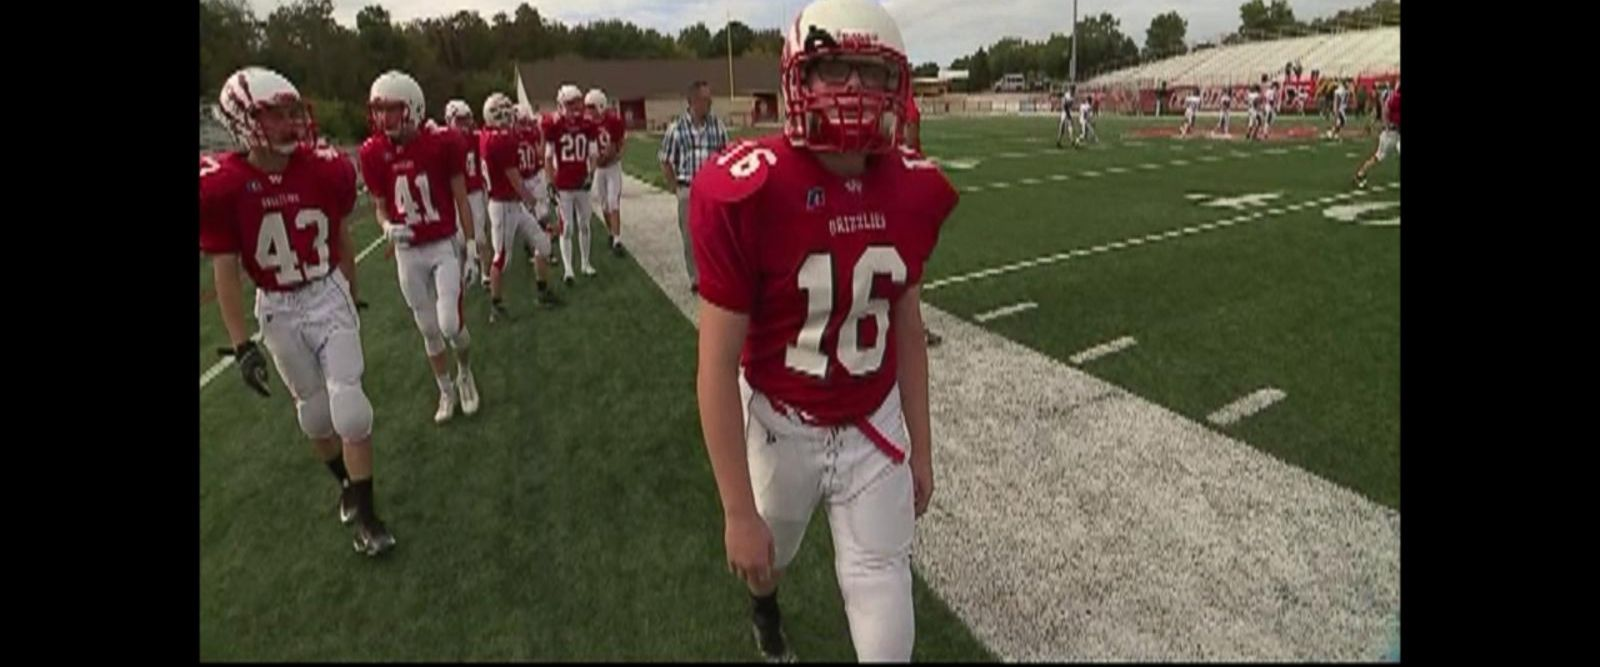 VIDEO: Teen with prosthetic leg defies odds on football field